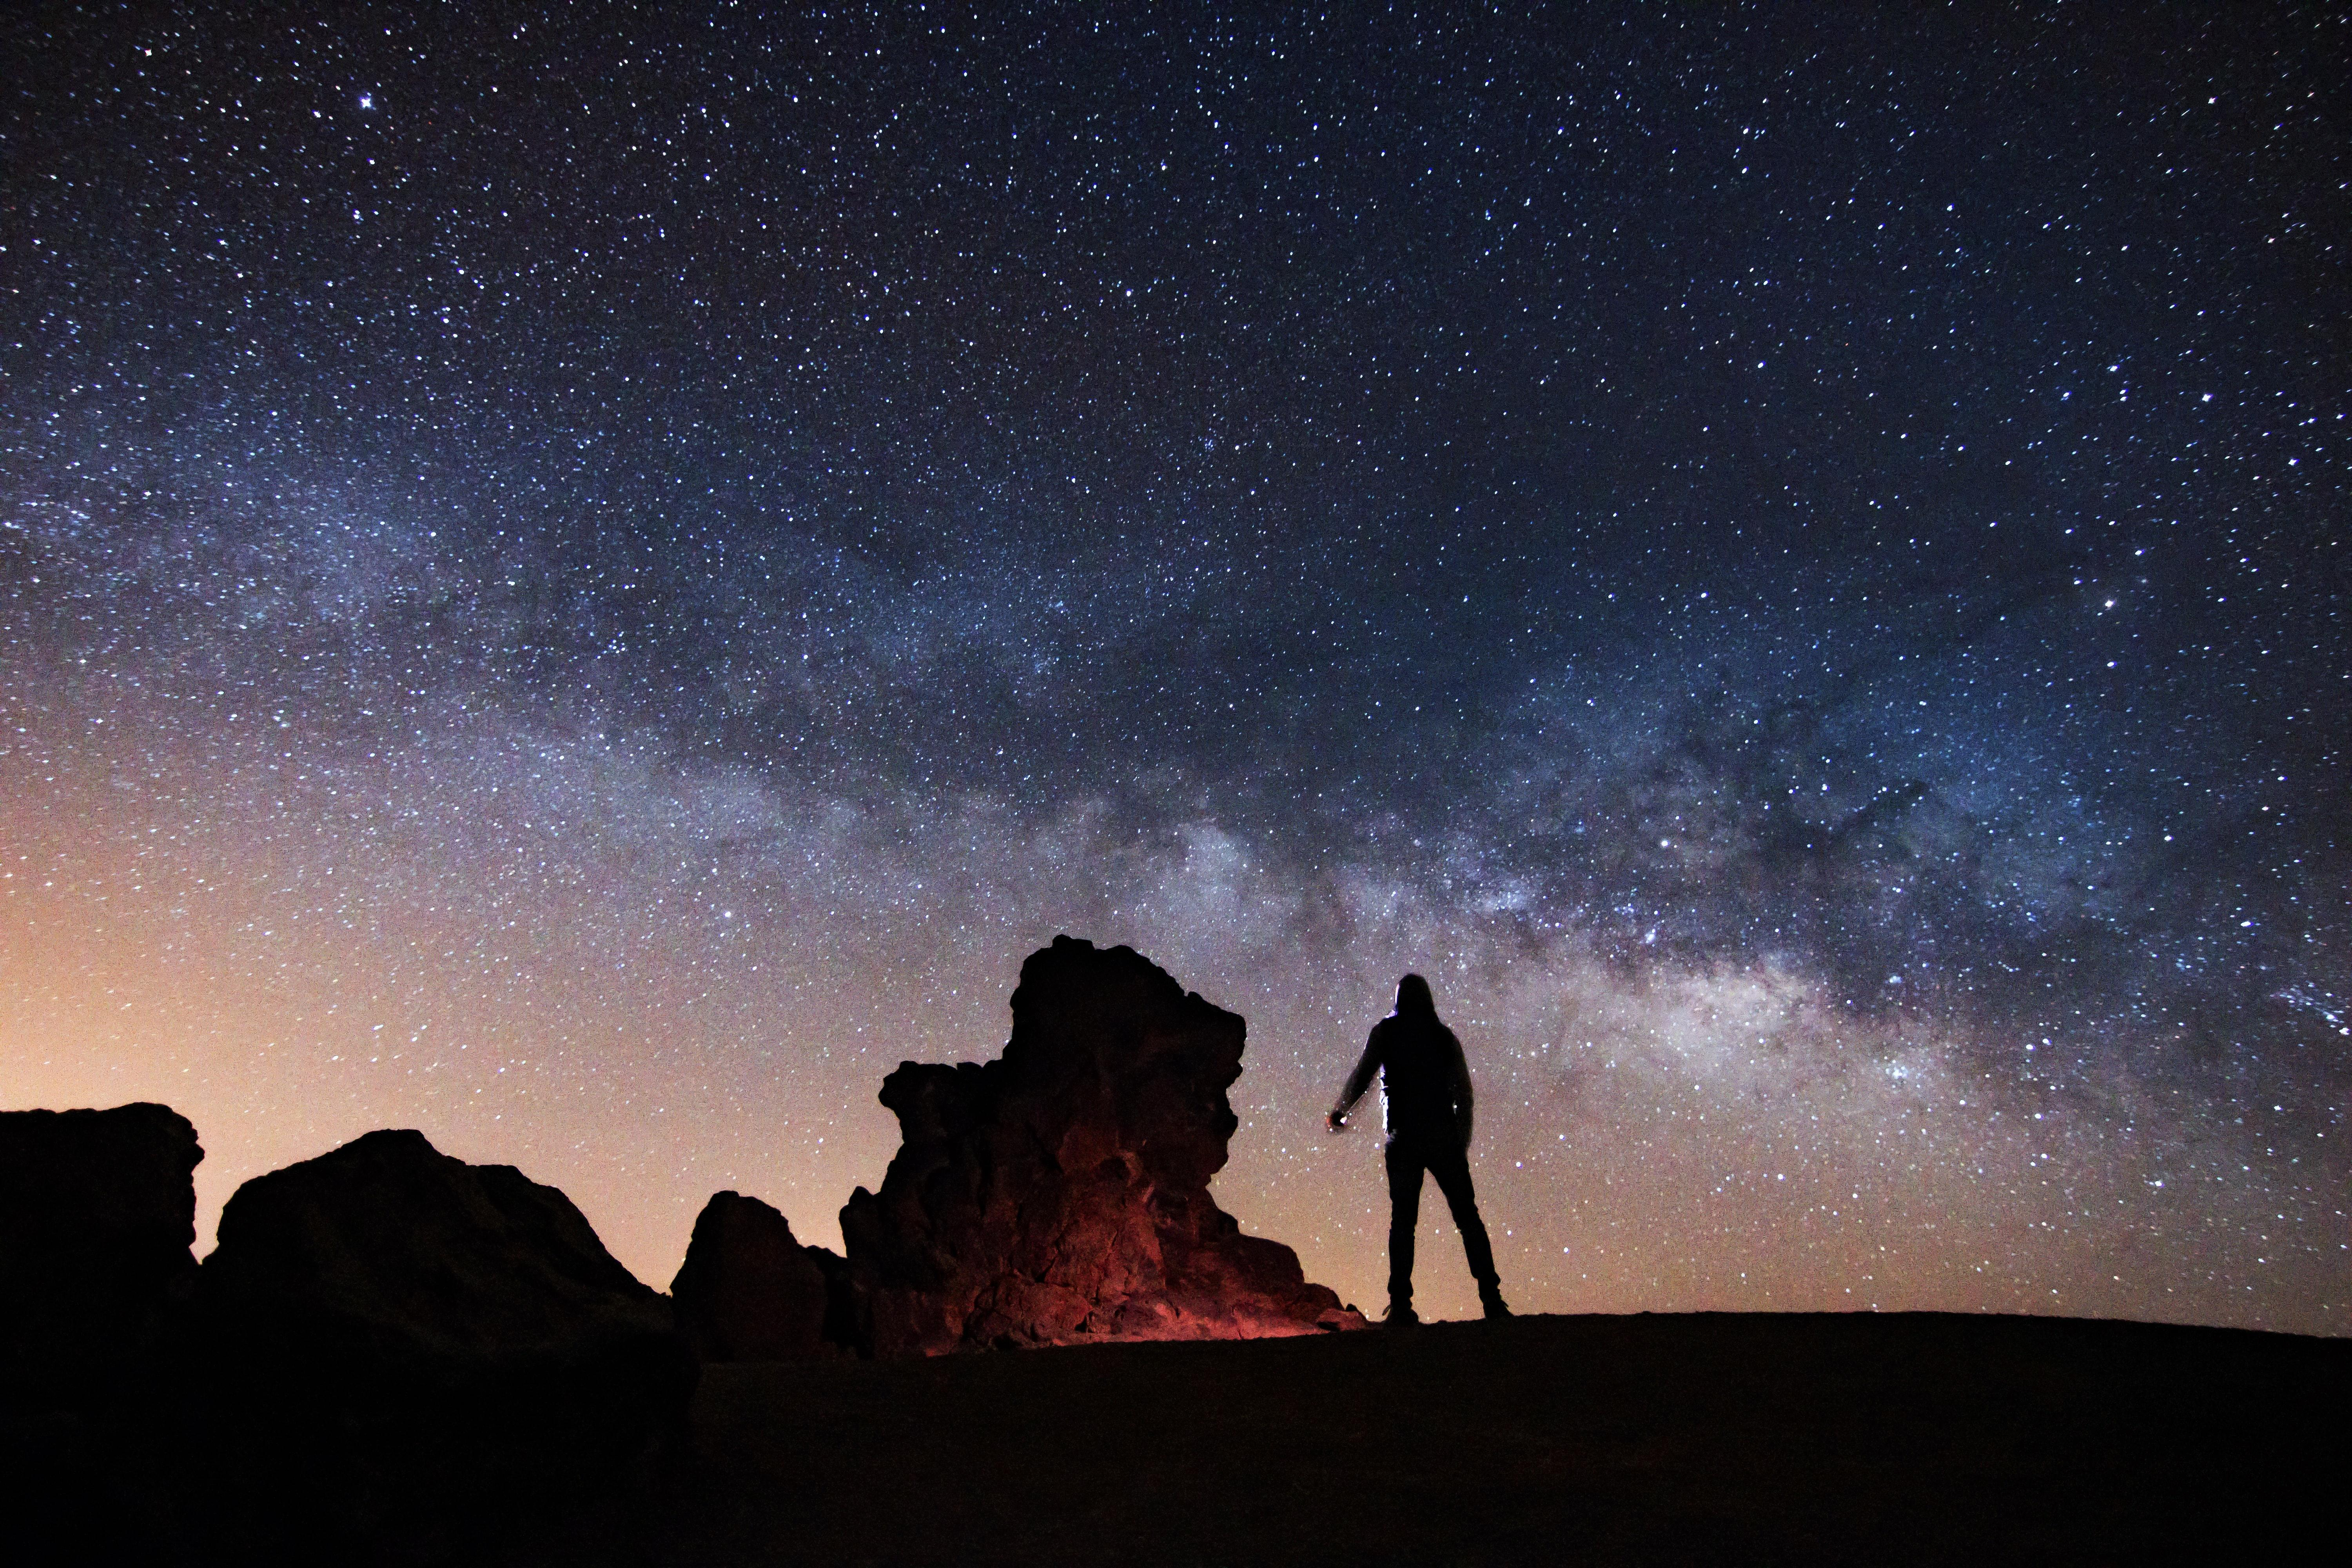 Stargazing in the Teide National Park